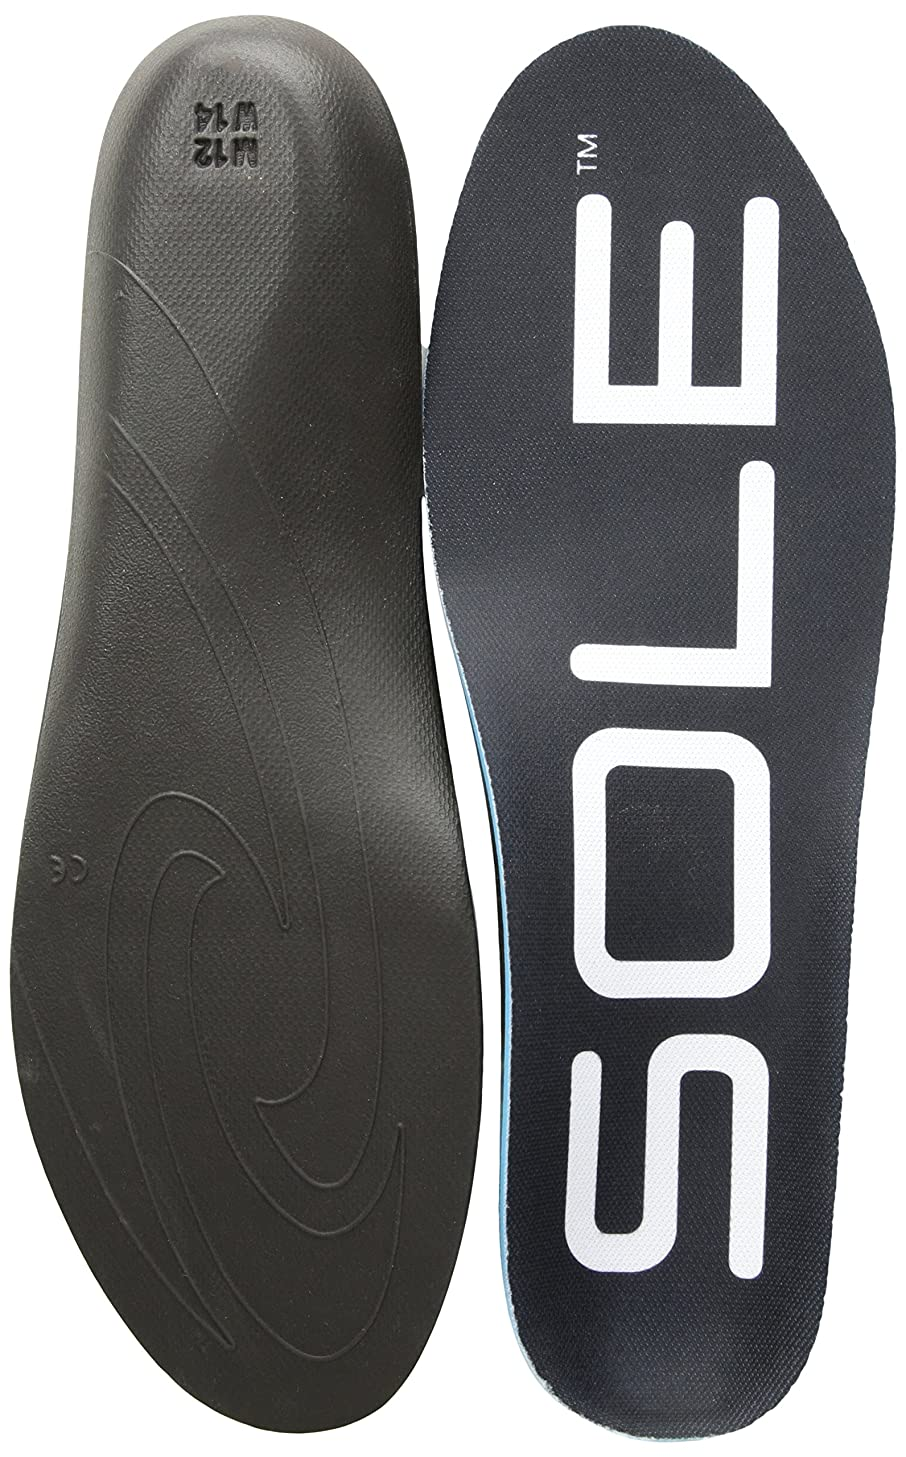 SOLE Active Thick High Volume Insert Insole for Men and Women Available in Regular, Wide, or Metatarsal Pad